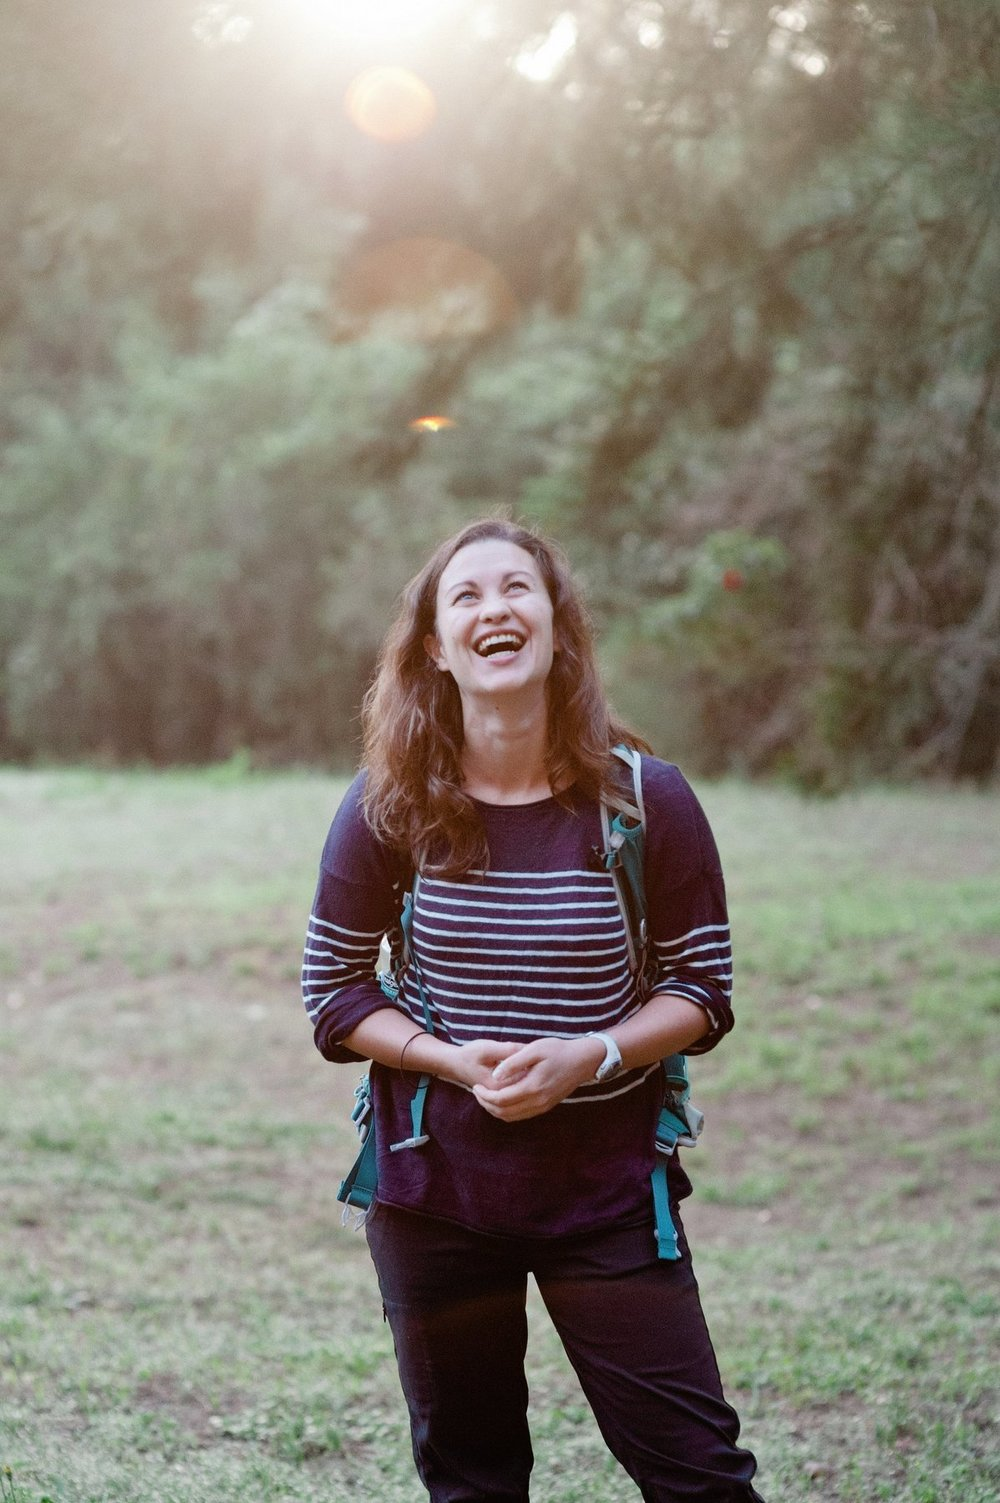 barefoot wellbeing - sydney australia - nature connect - mindfulness - movement - yoga - nature walksLouise Kiddell - FoM020.jpg